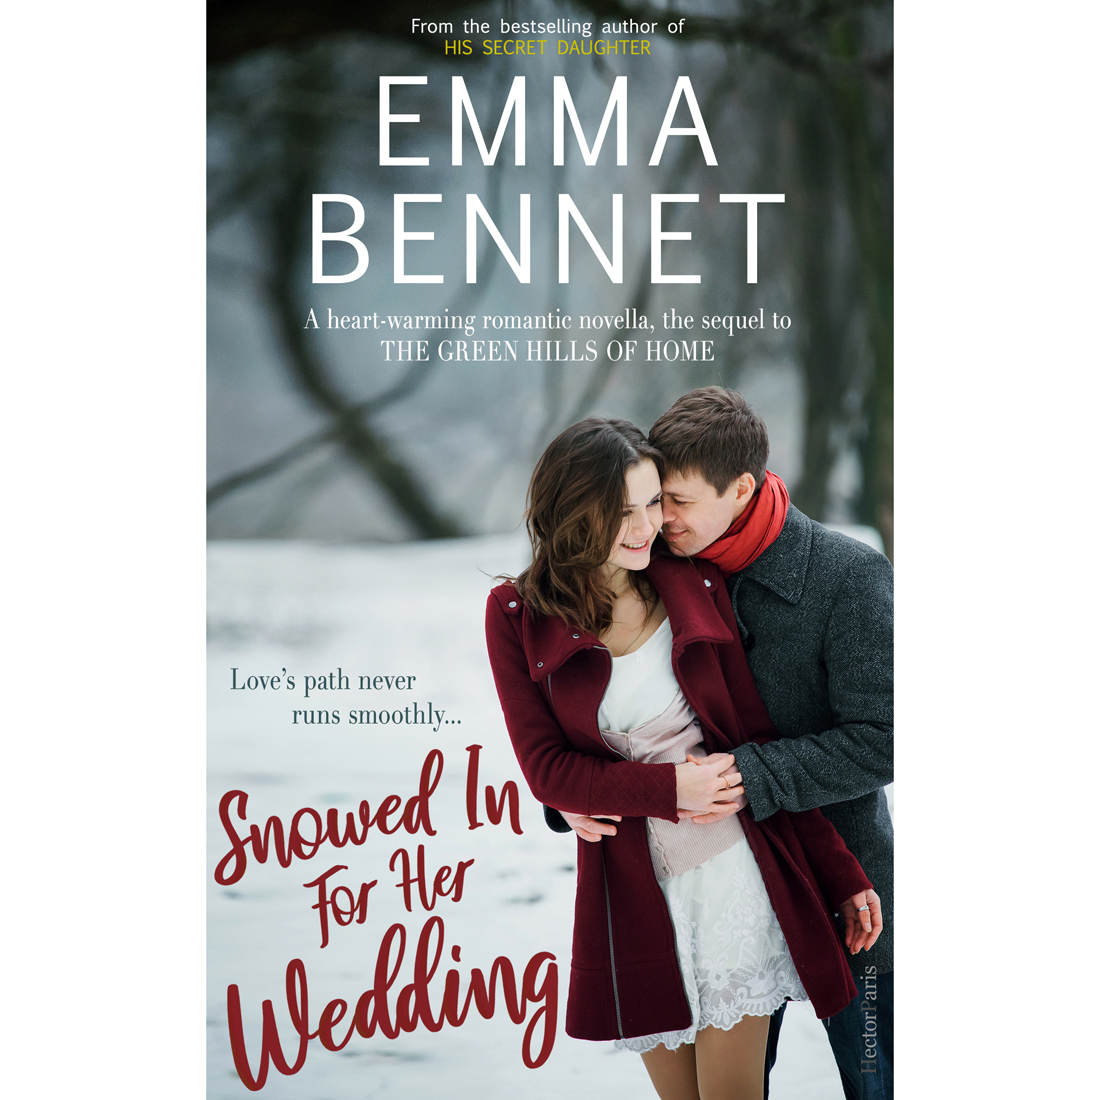 Snowed In For Her Wedding by Emma Bennet